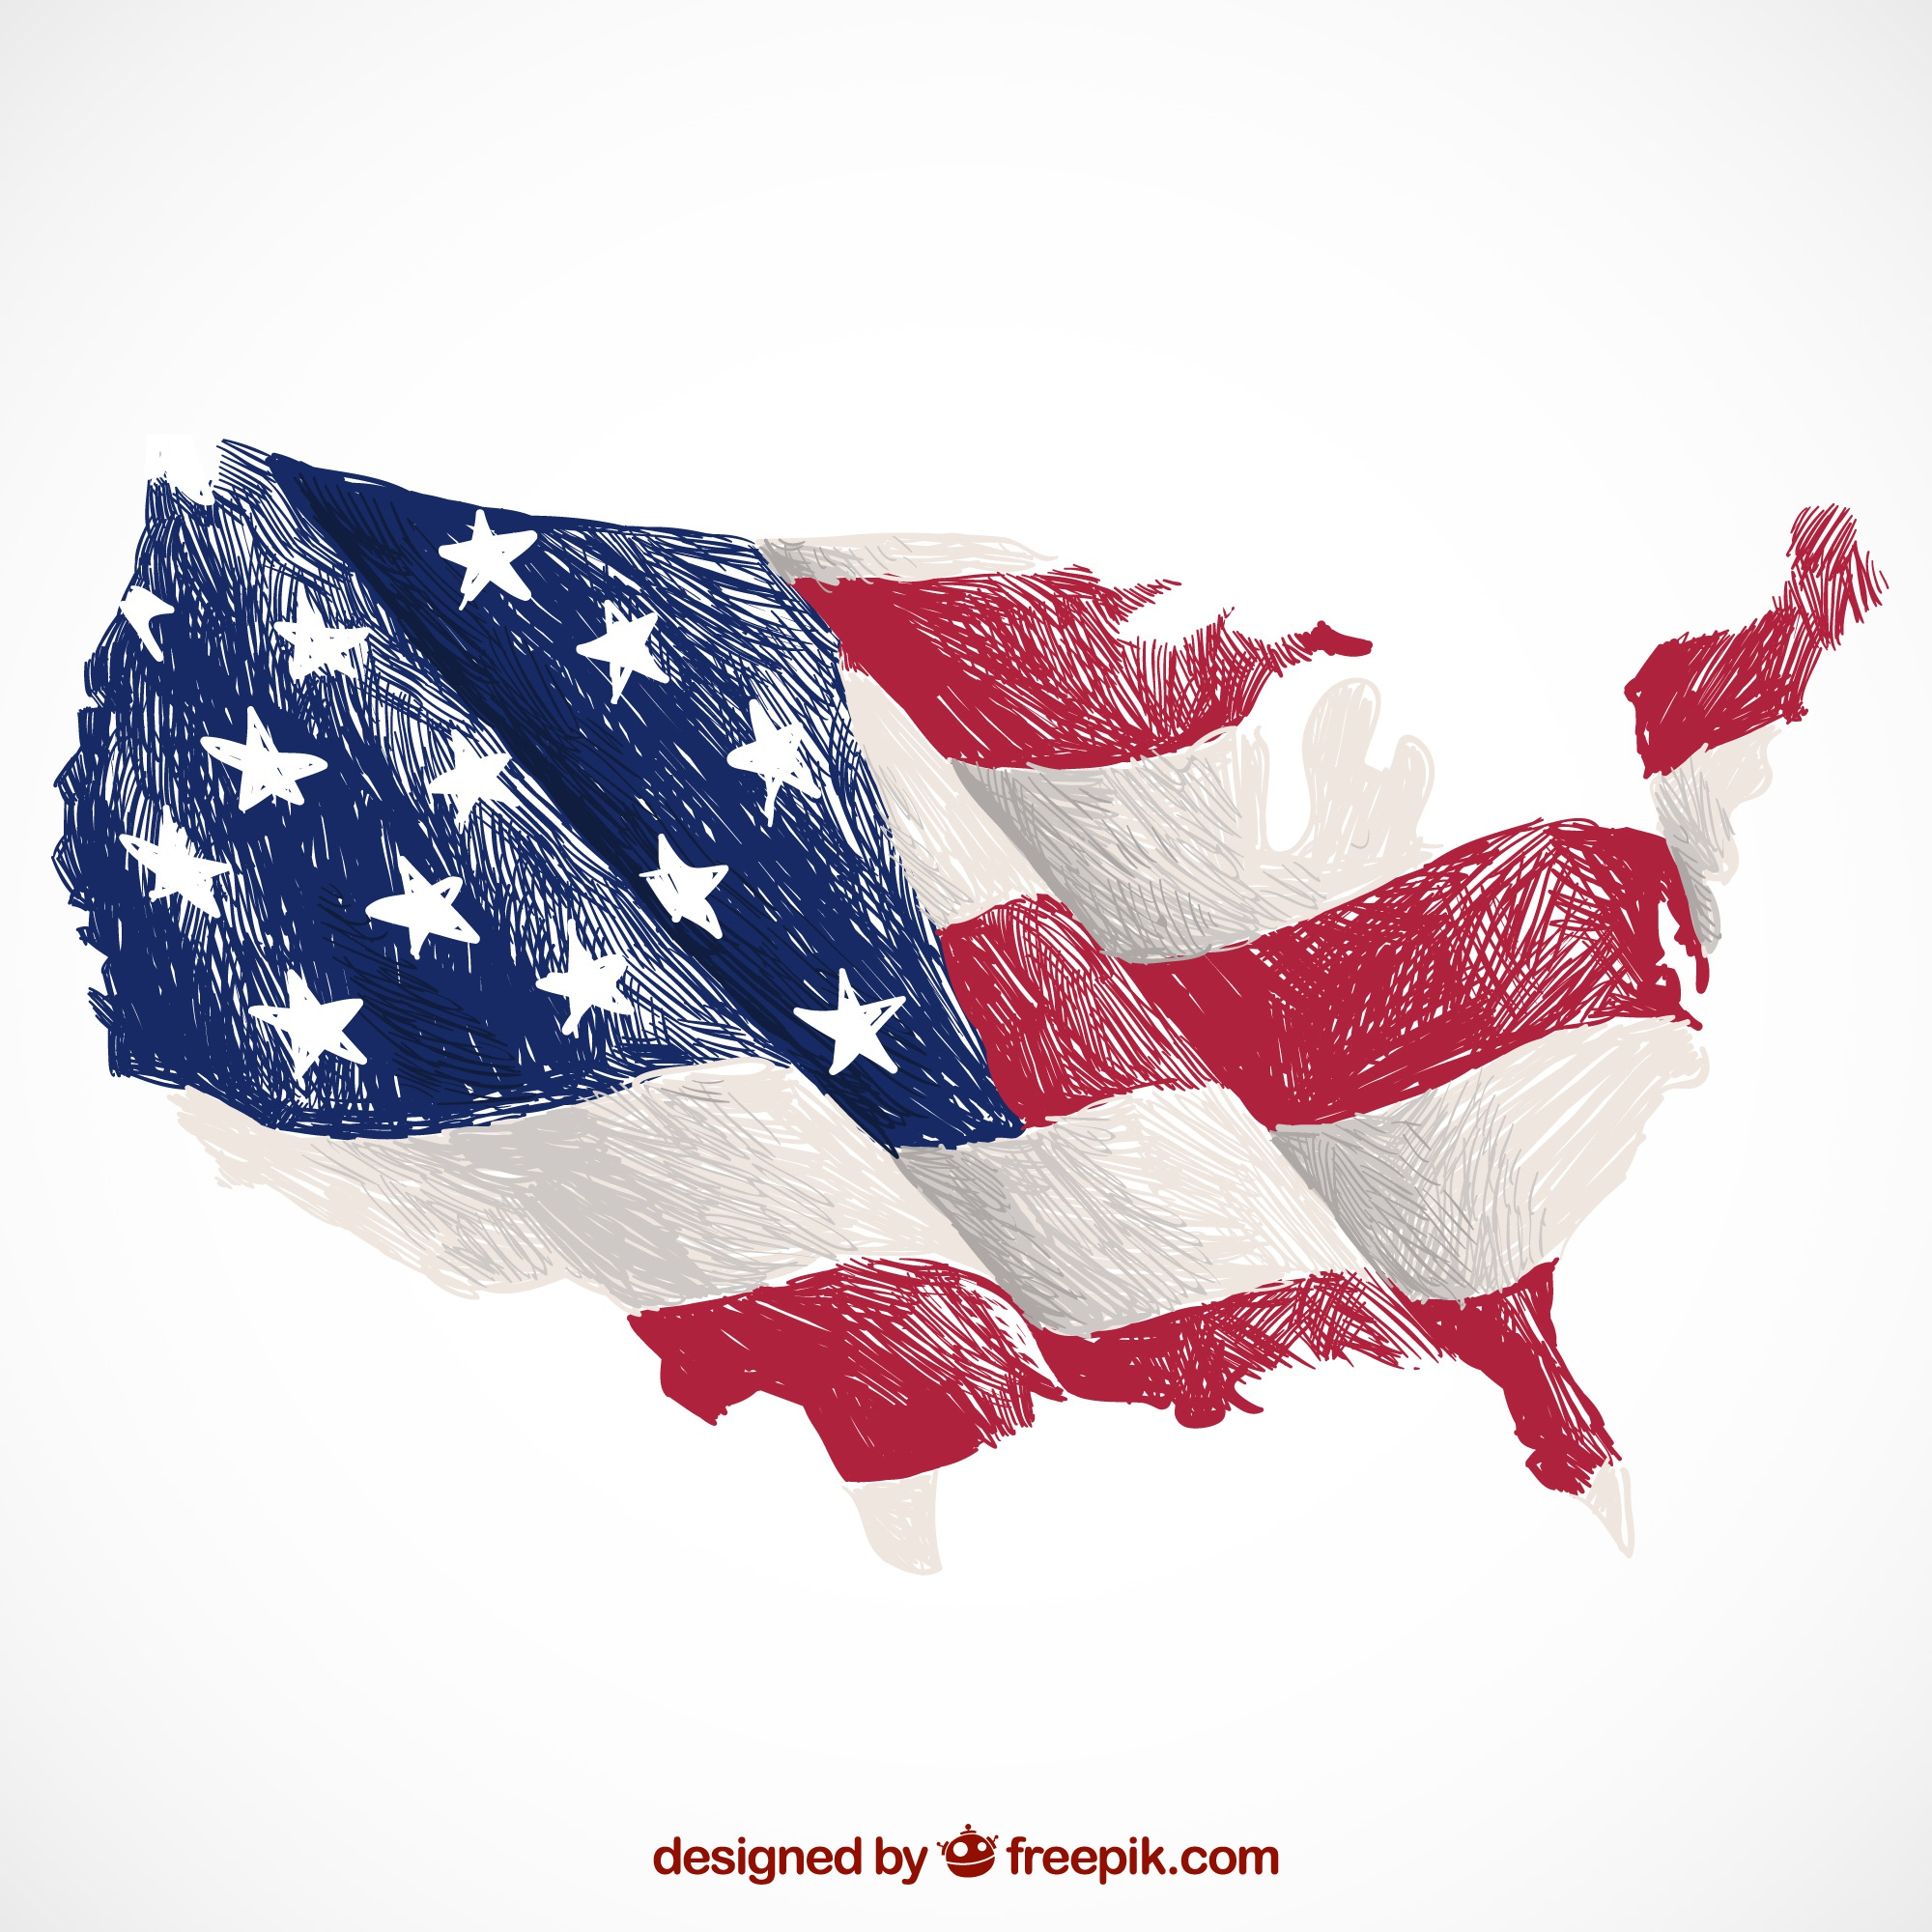 Decorative background with united states map and flag